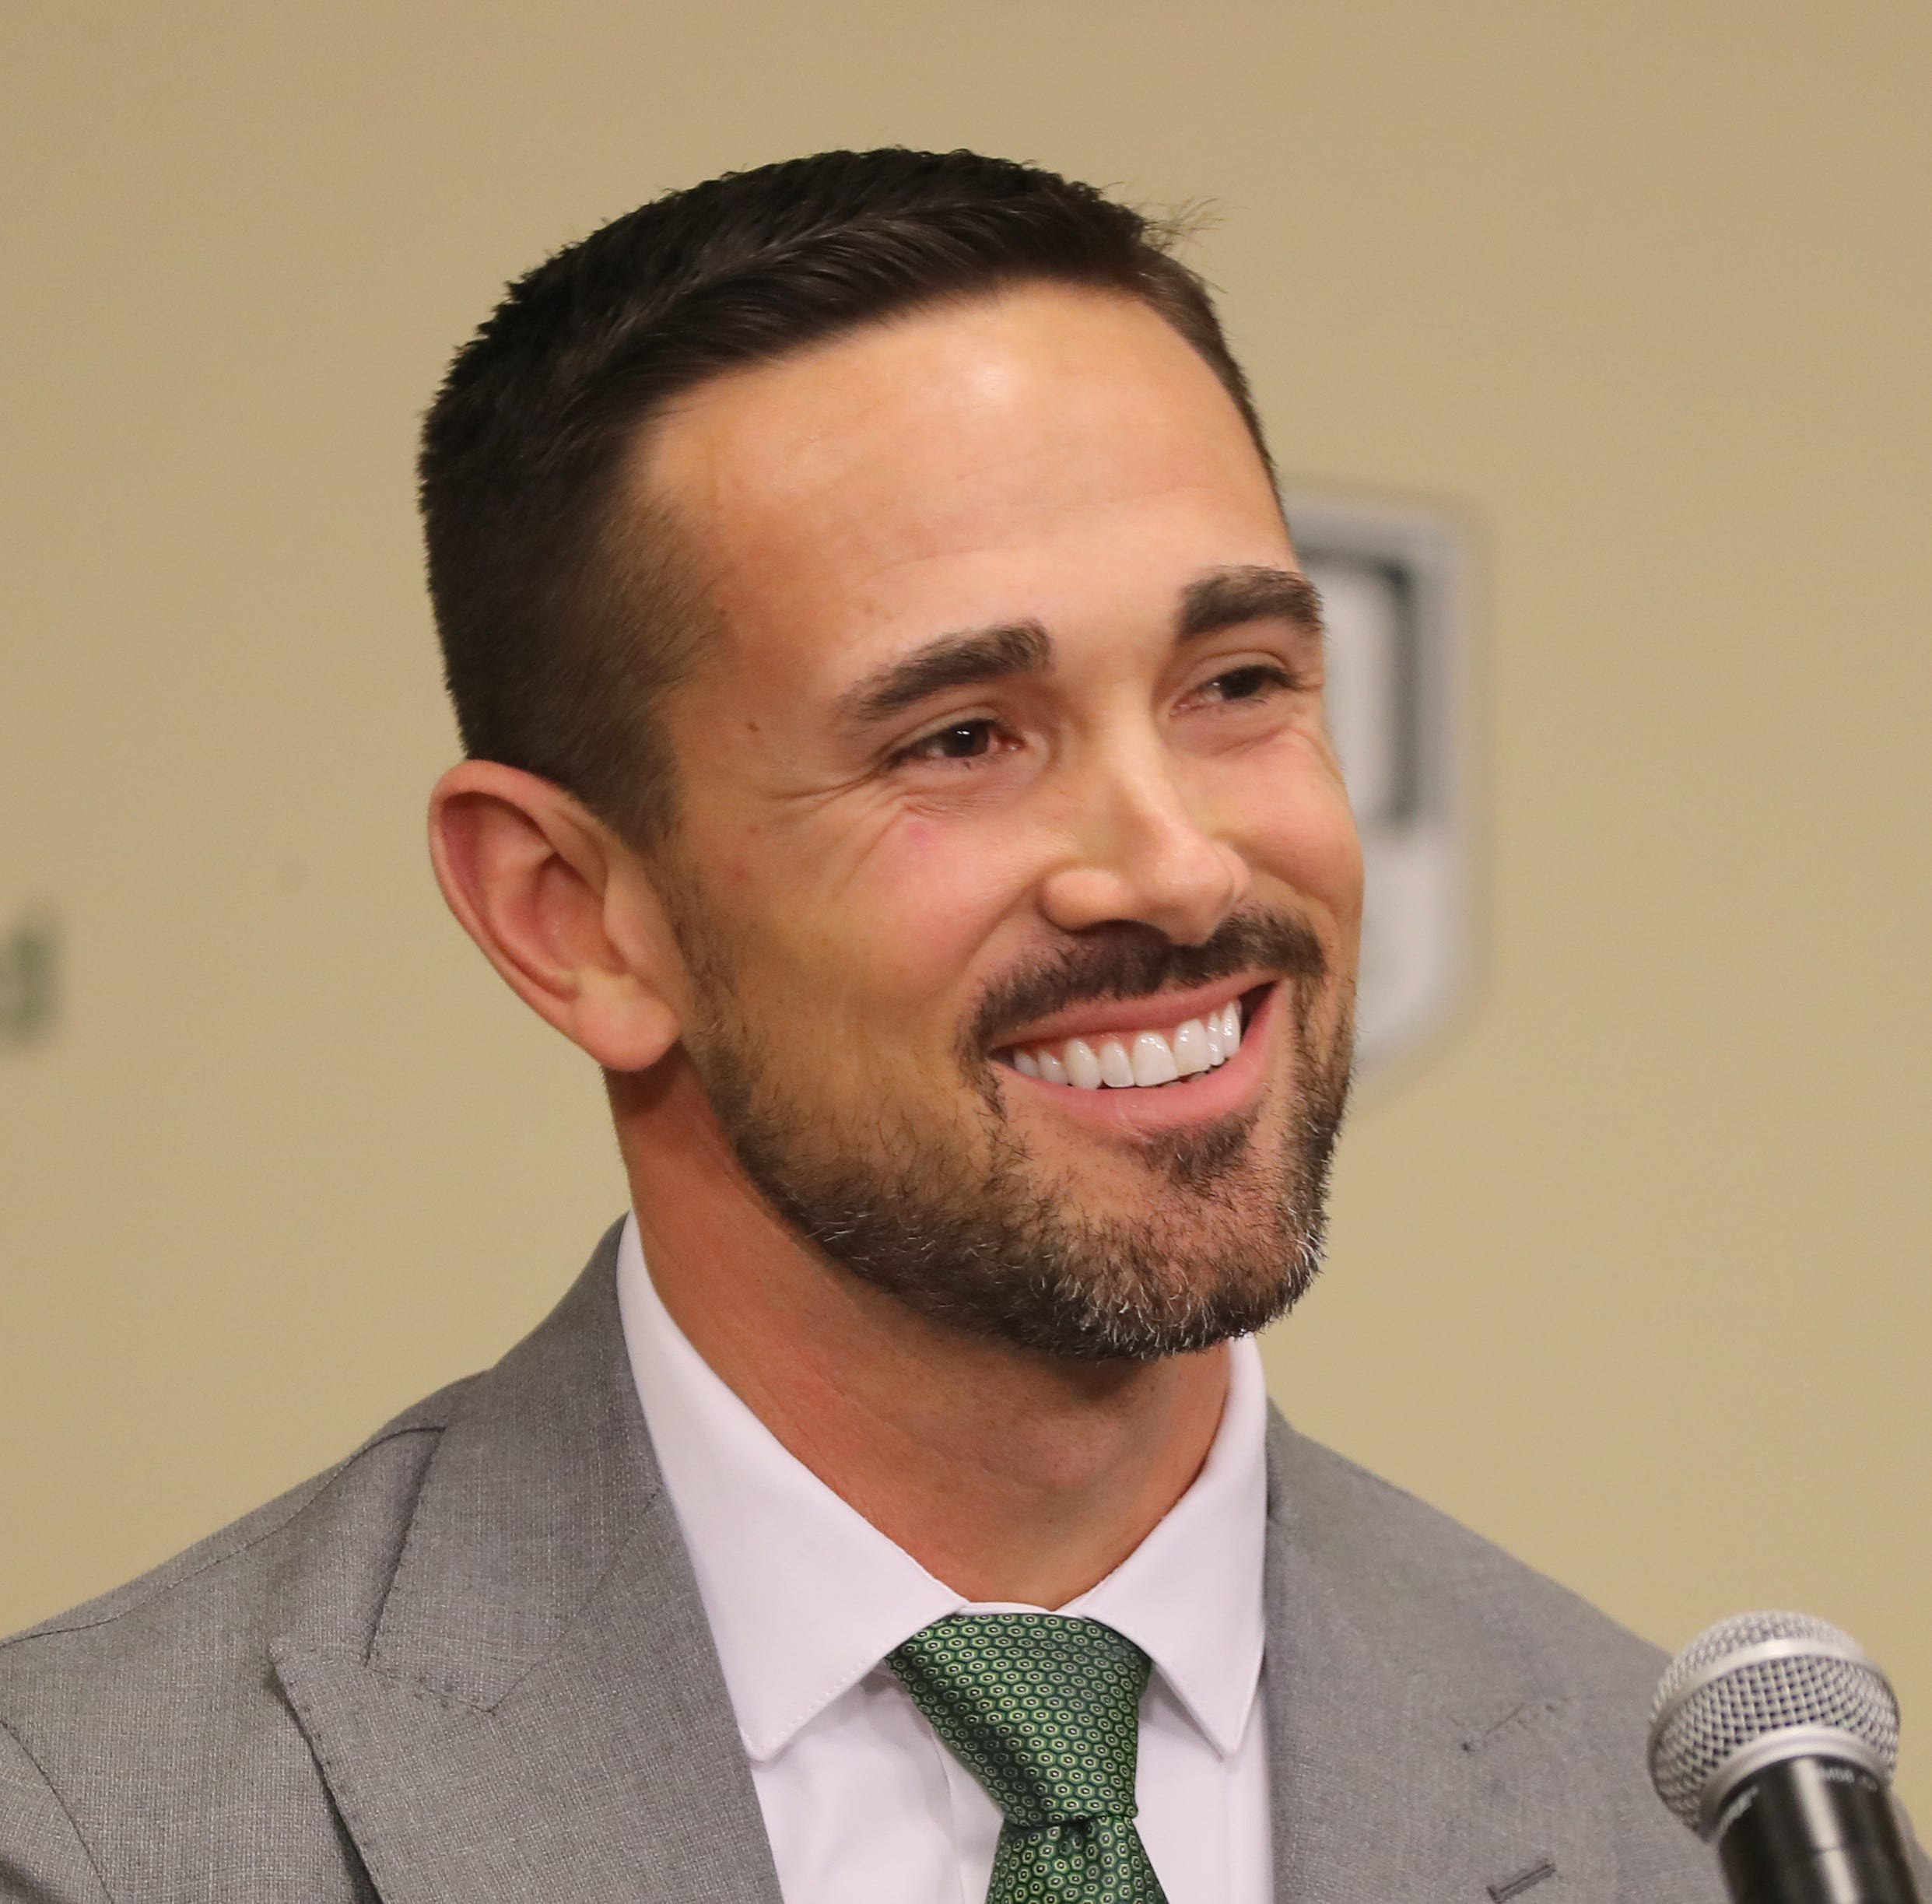 Matt LaFleur may not use Twitter much, but most recent tweet painful for Packers fans